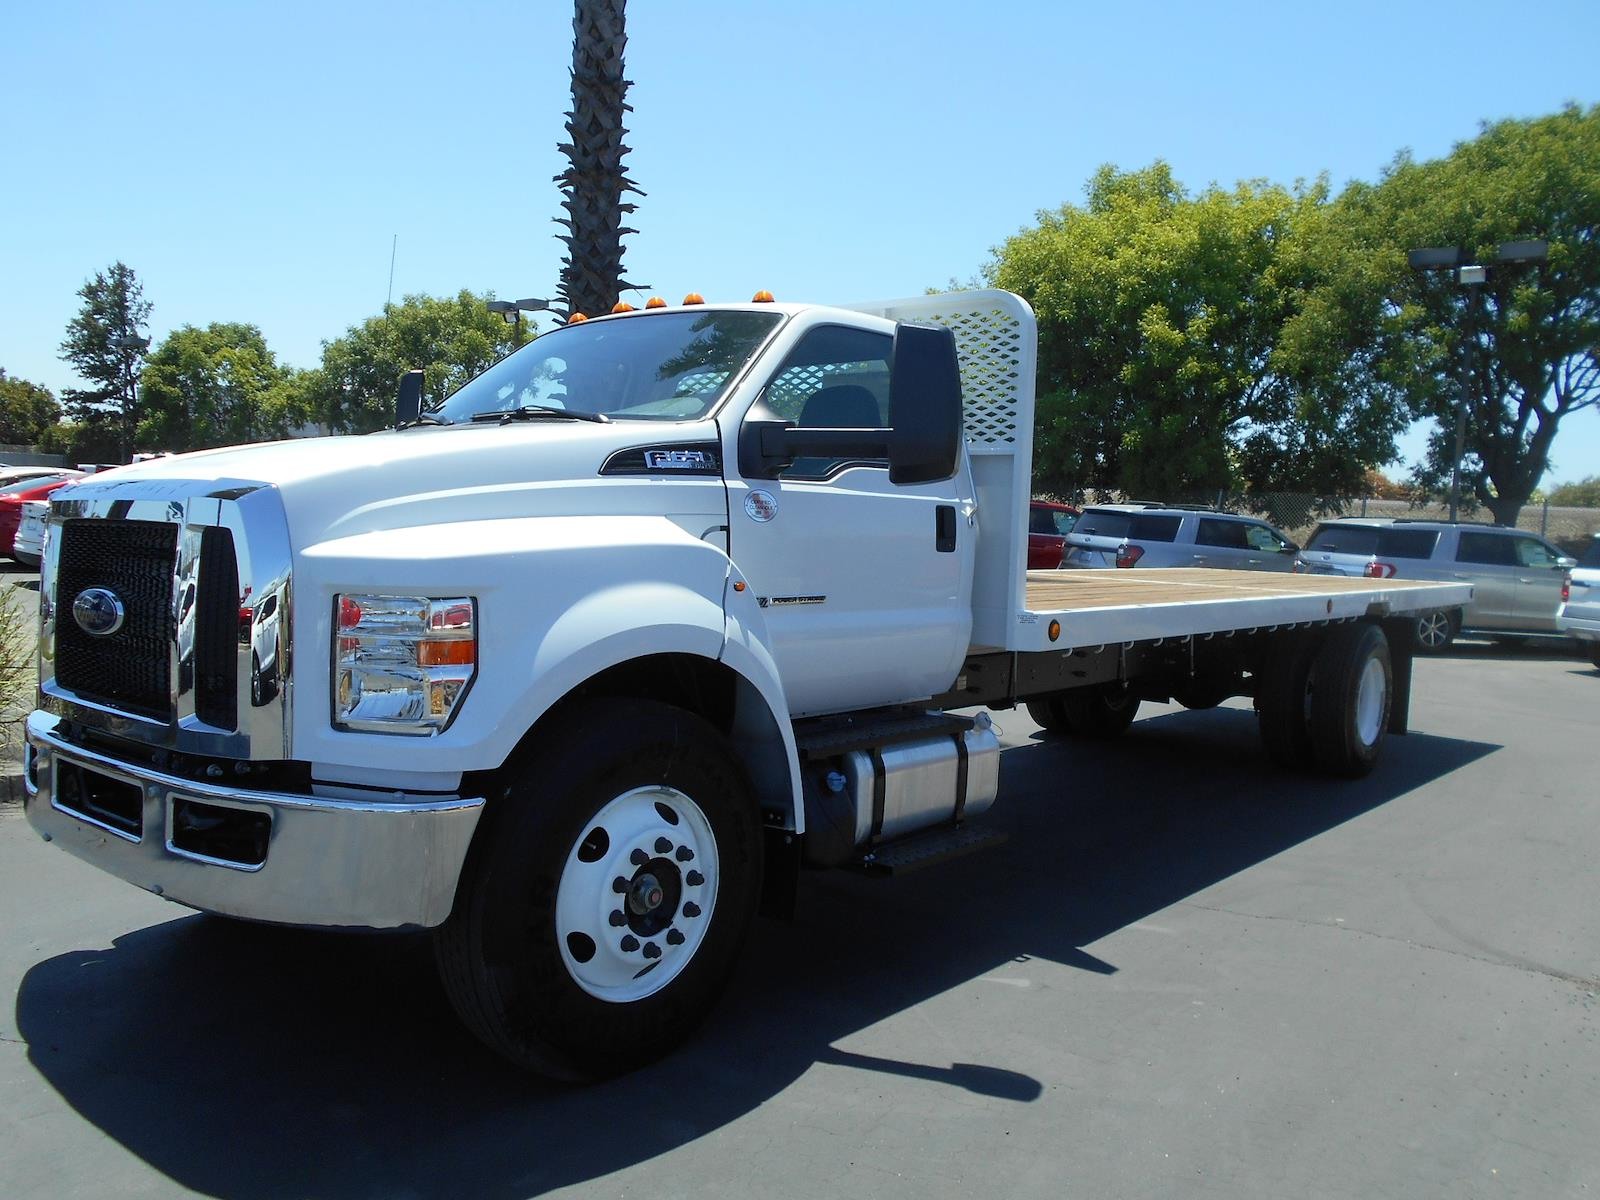 2021 Ford F-650 Regular Cab DRW 4x2, Scelzi Platform Body #57995 - photo 1